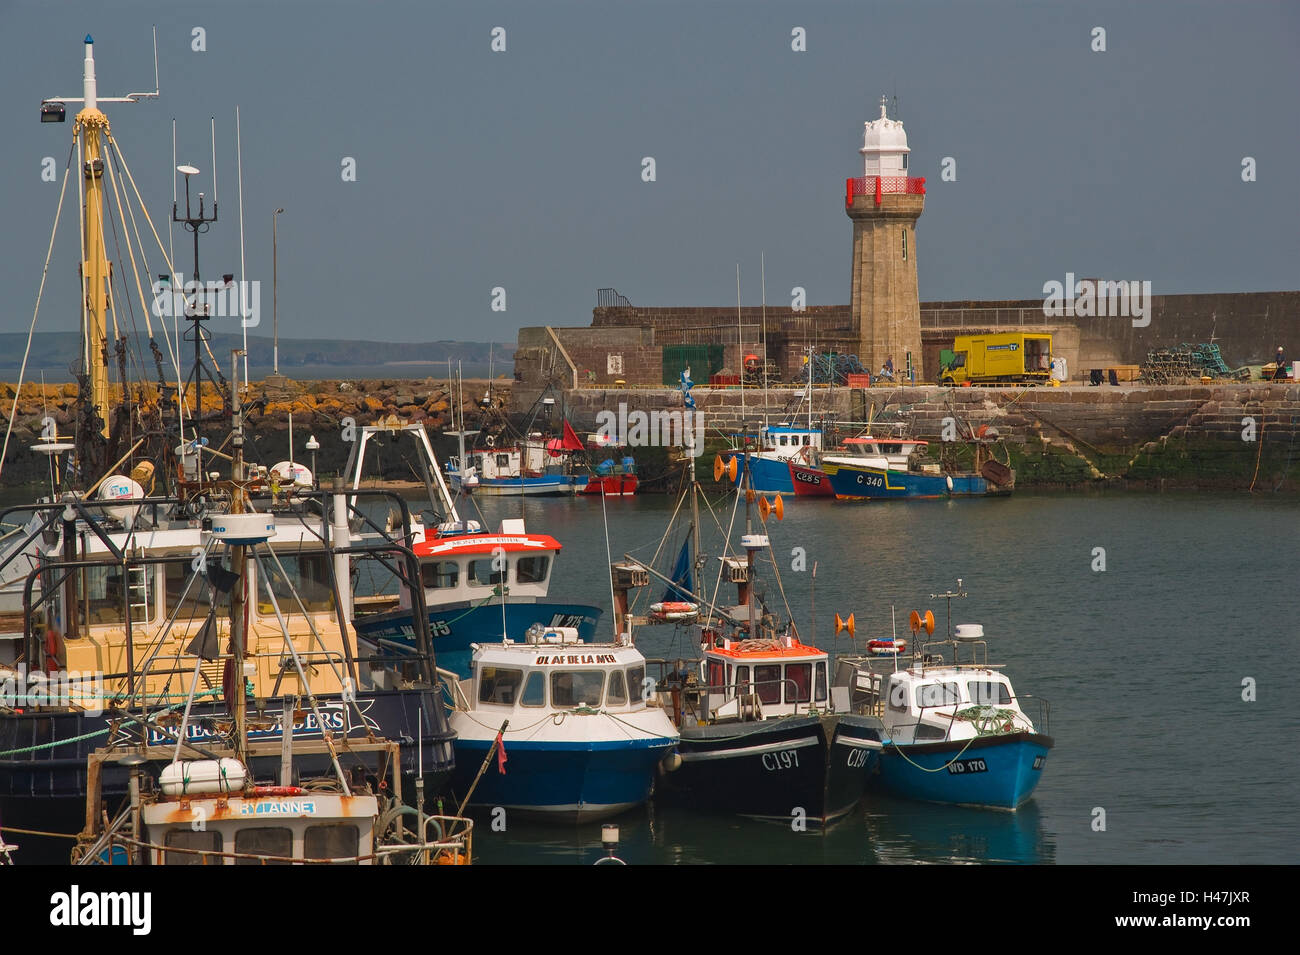 Ireland, beacon Dunmore East, harbour, ships, - Stock Image